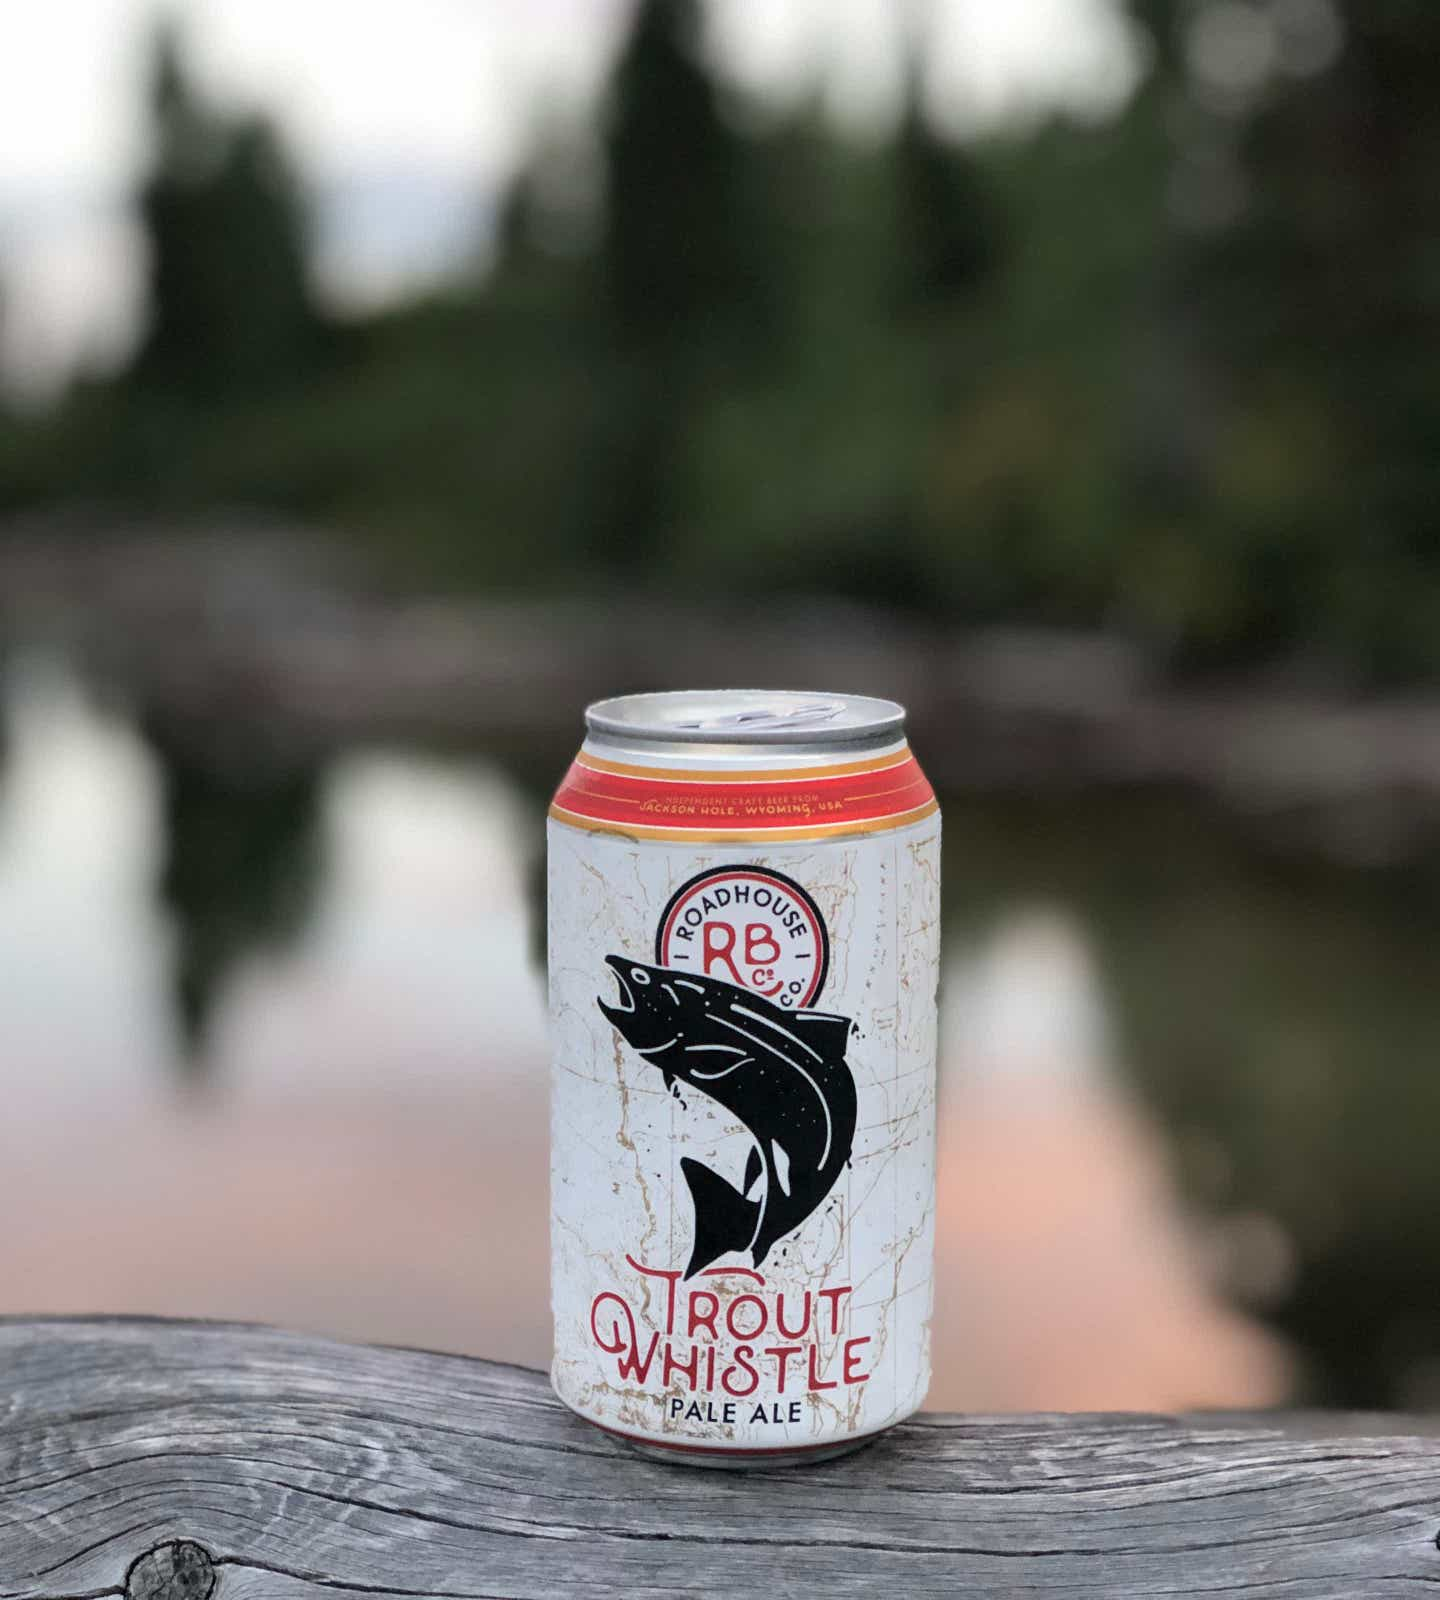 Jenn's beer from hikers